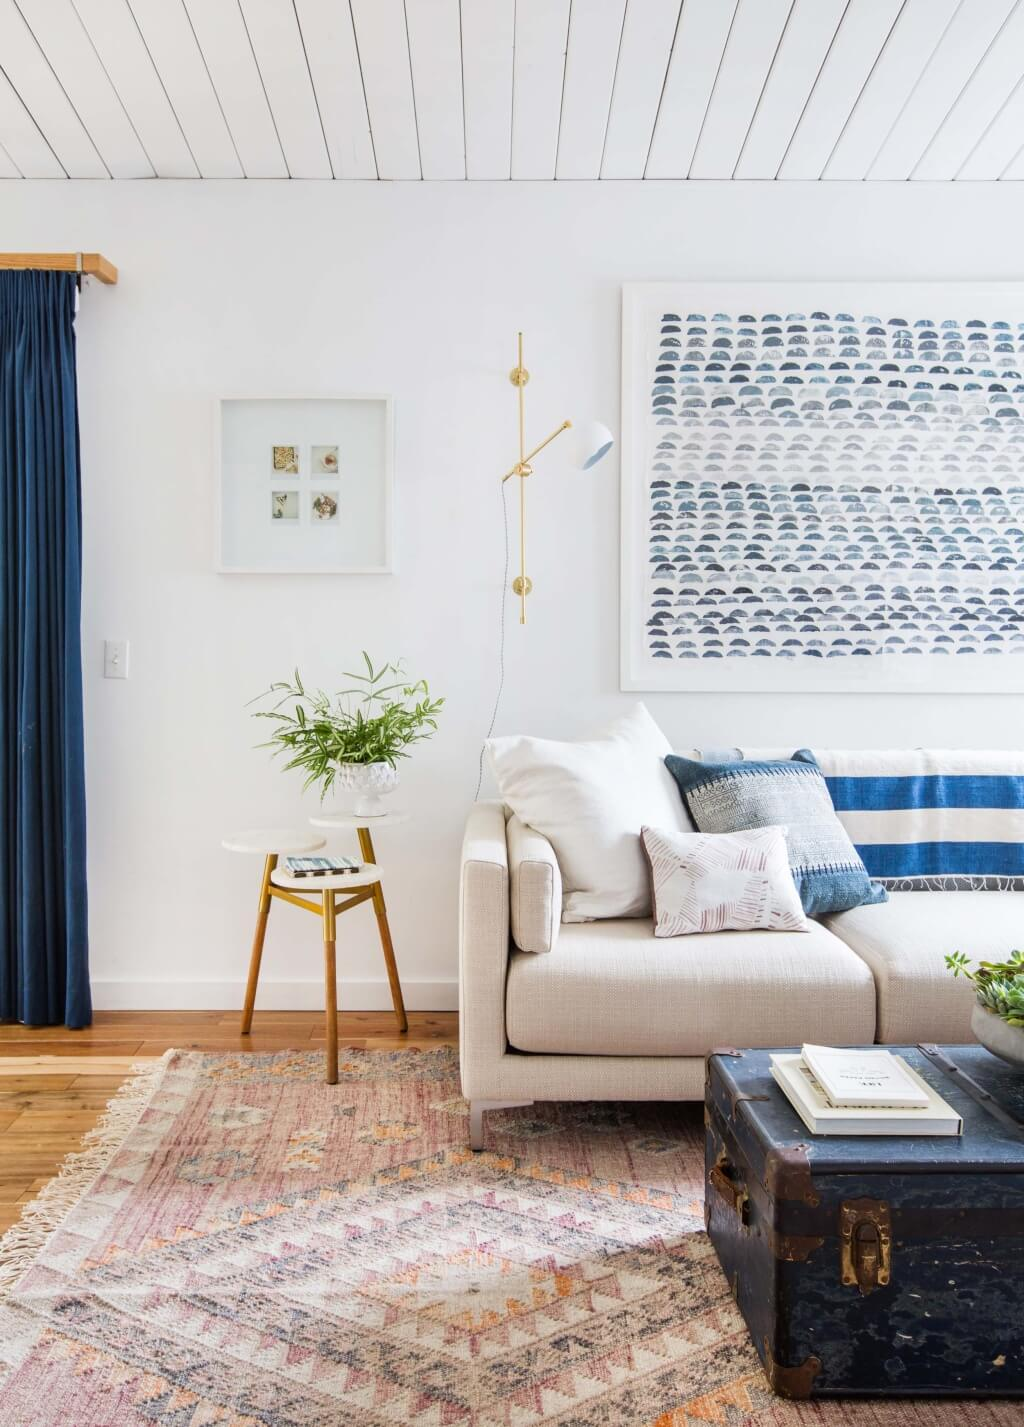 5 ways to get the Californian Cool interiors look in your own home